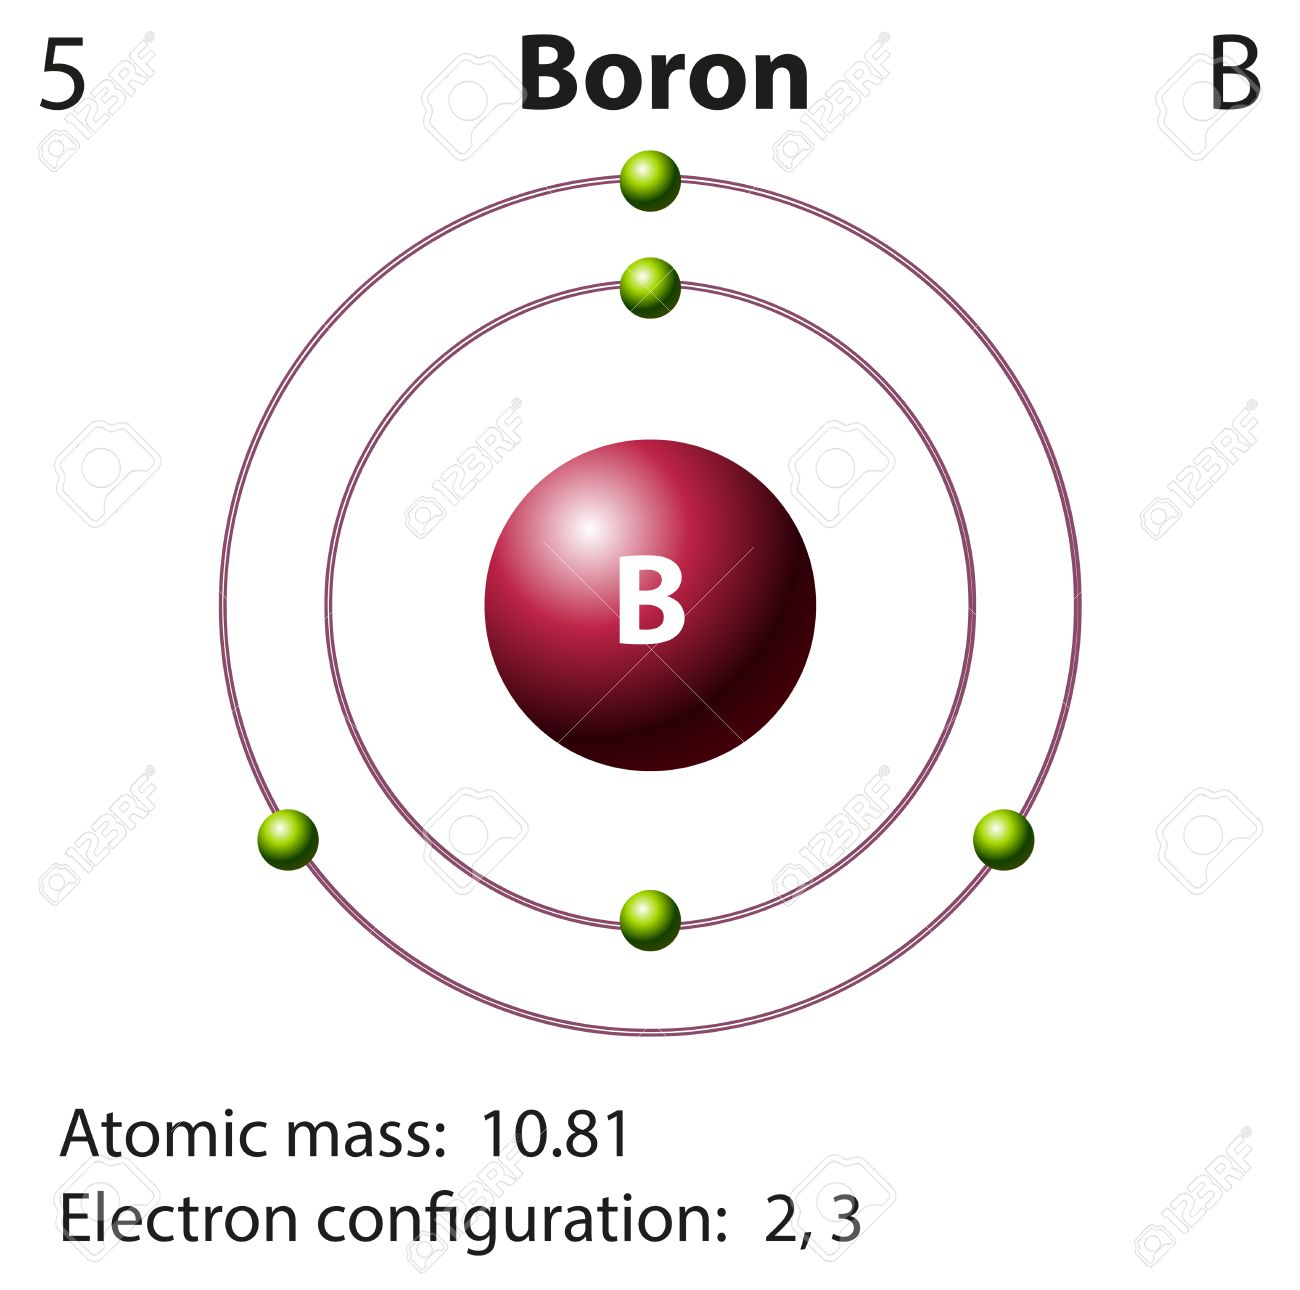 44789987 Diagram representation of the element boron illustration Stock Vector technetium electron dot diagram electron dot diagram hydrogen and  at crackthecode.co